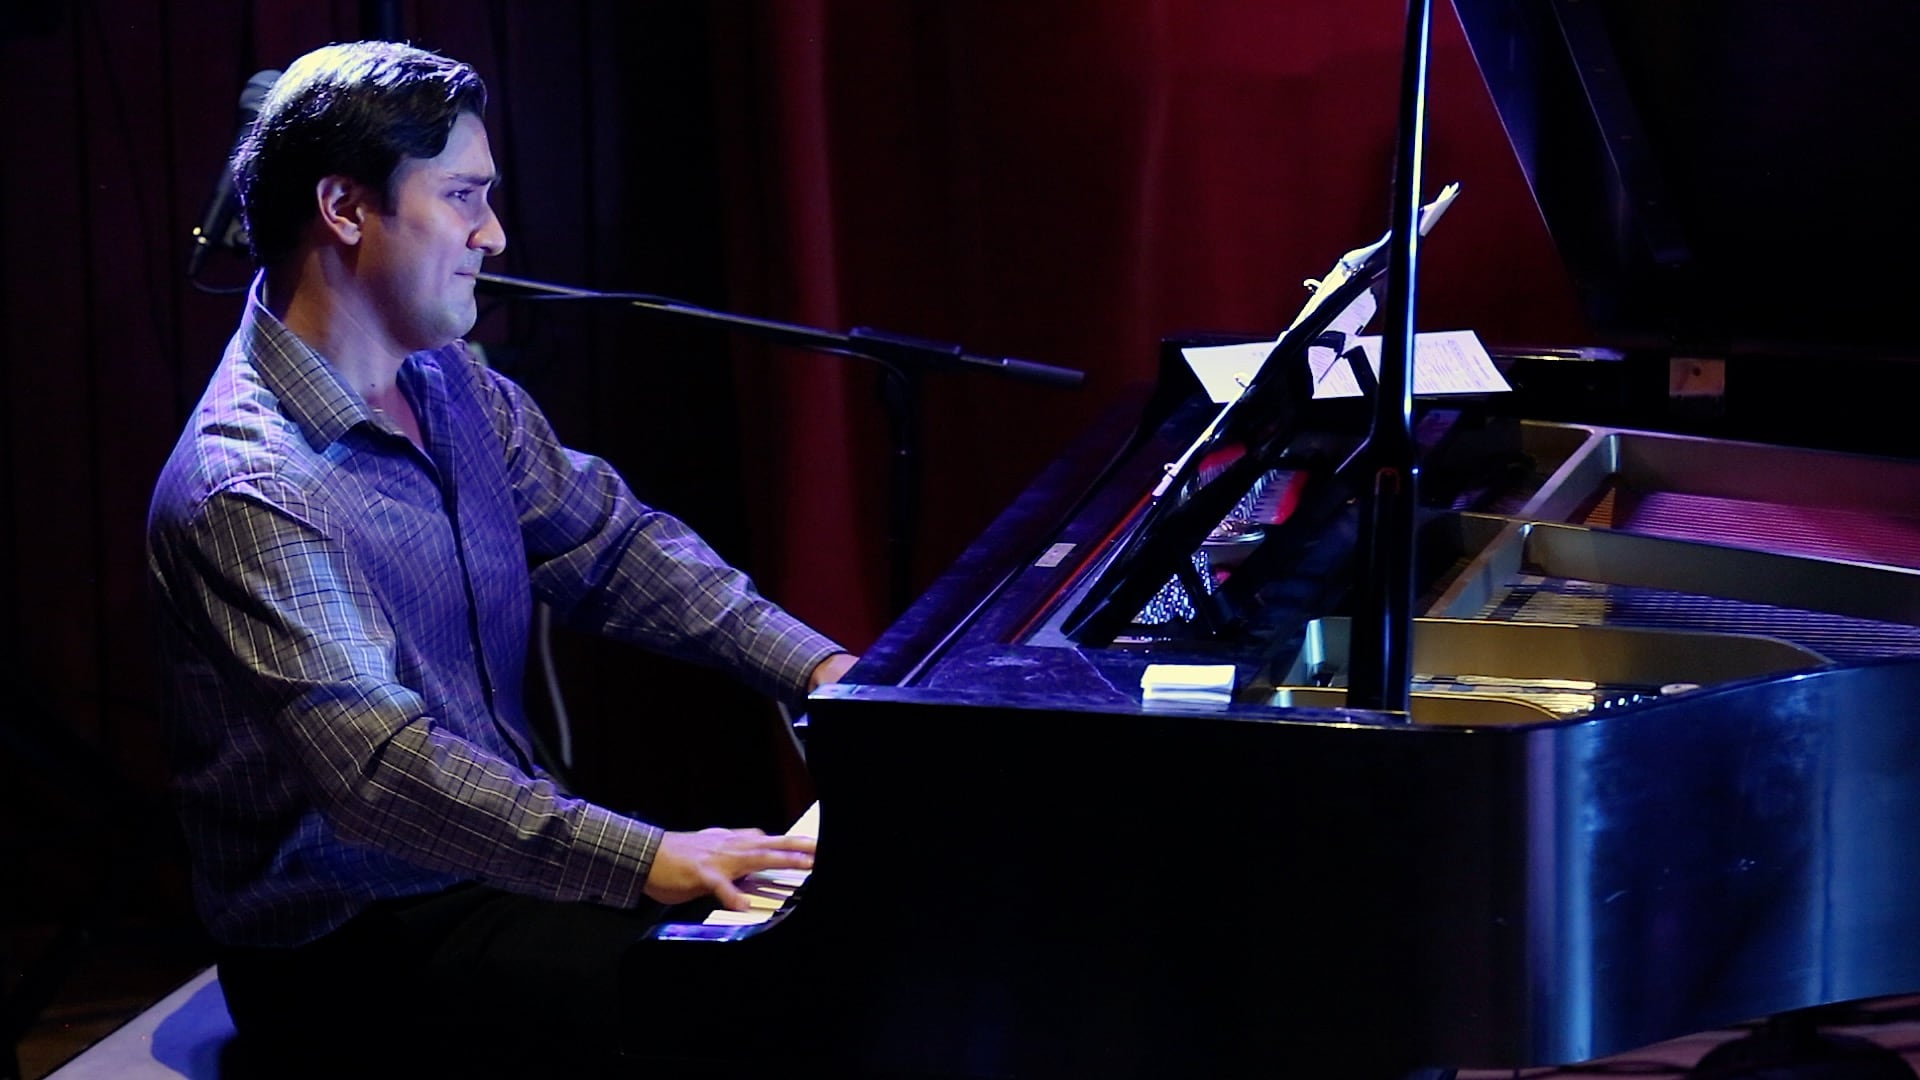 Composer Denis Nassar works with residents to compose new music